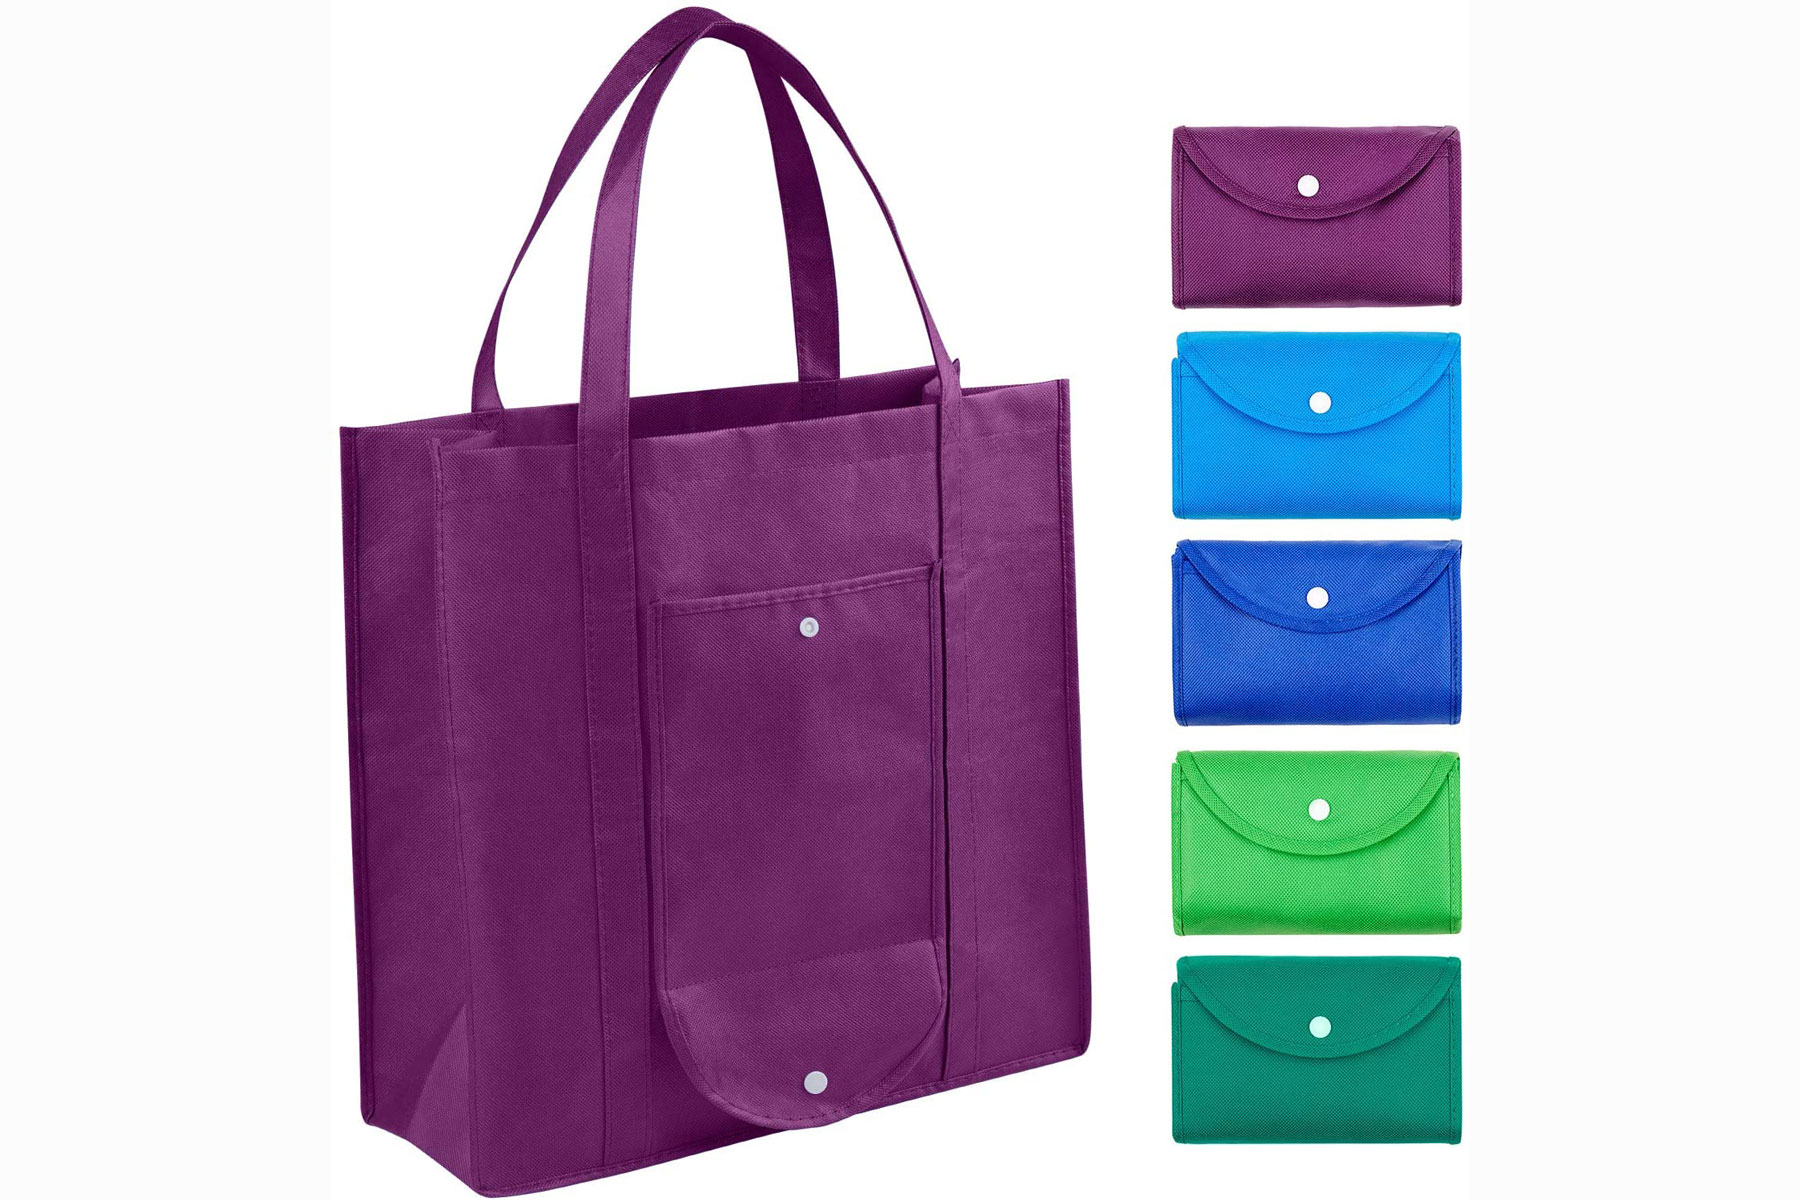 Purple, blue, and green shopping totes